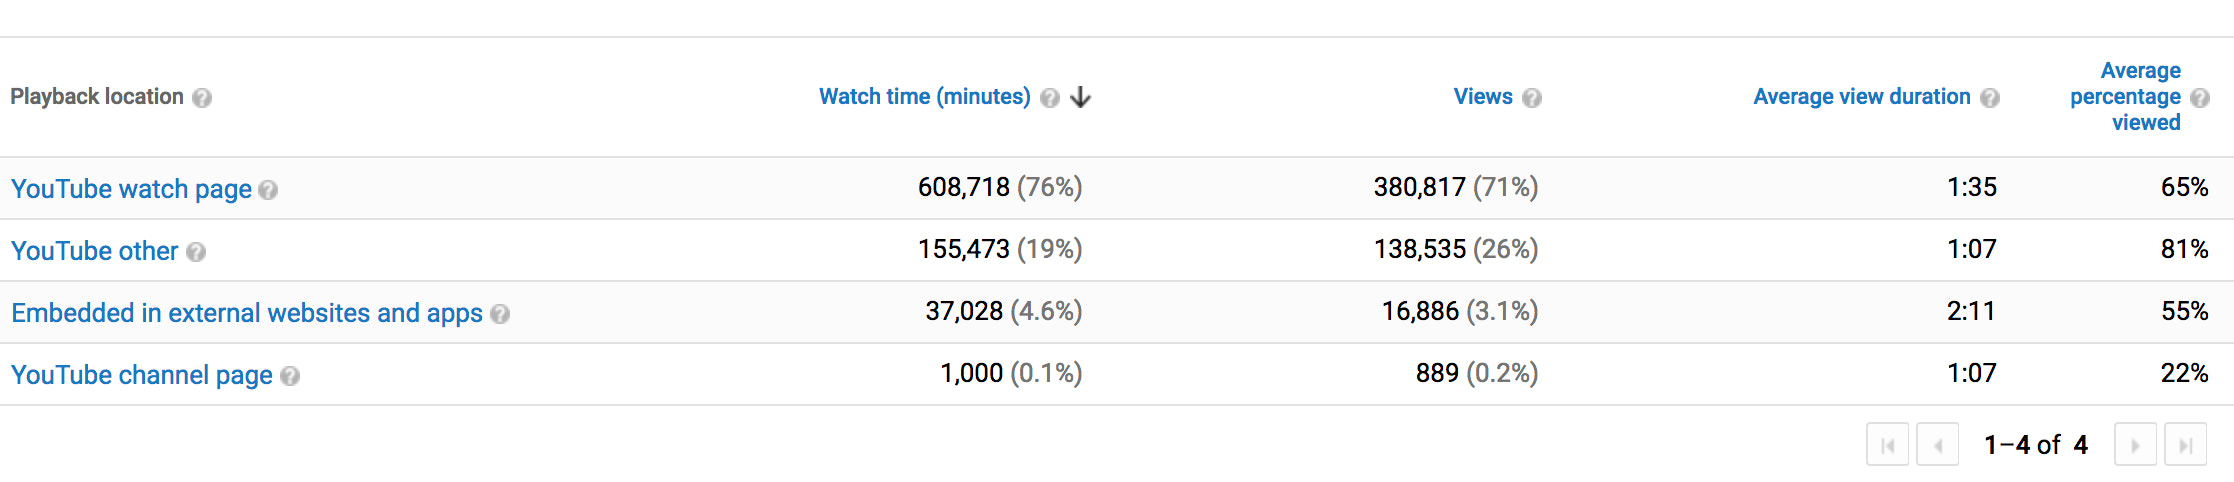 YouTube Analytics: 10 Key Metrics to Track Video Performance